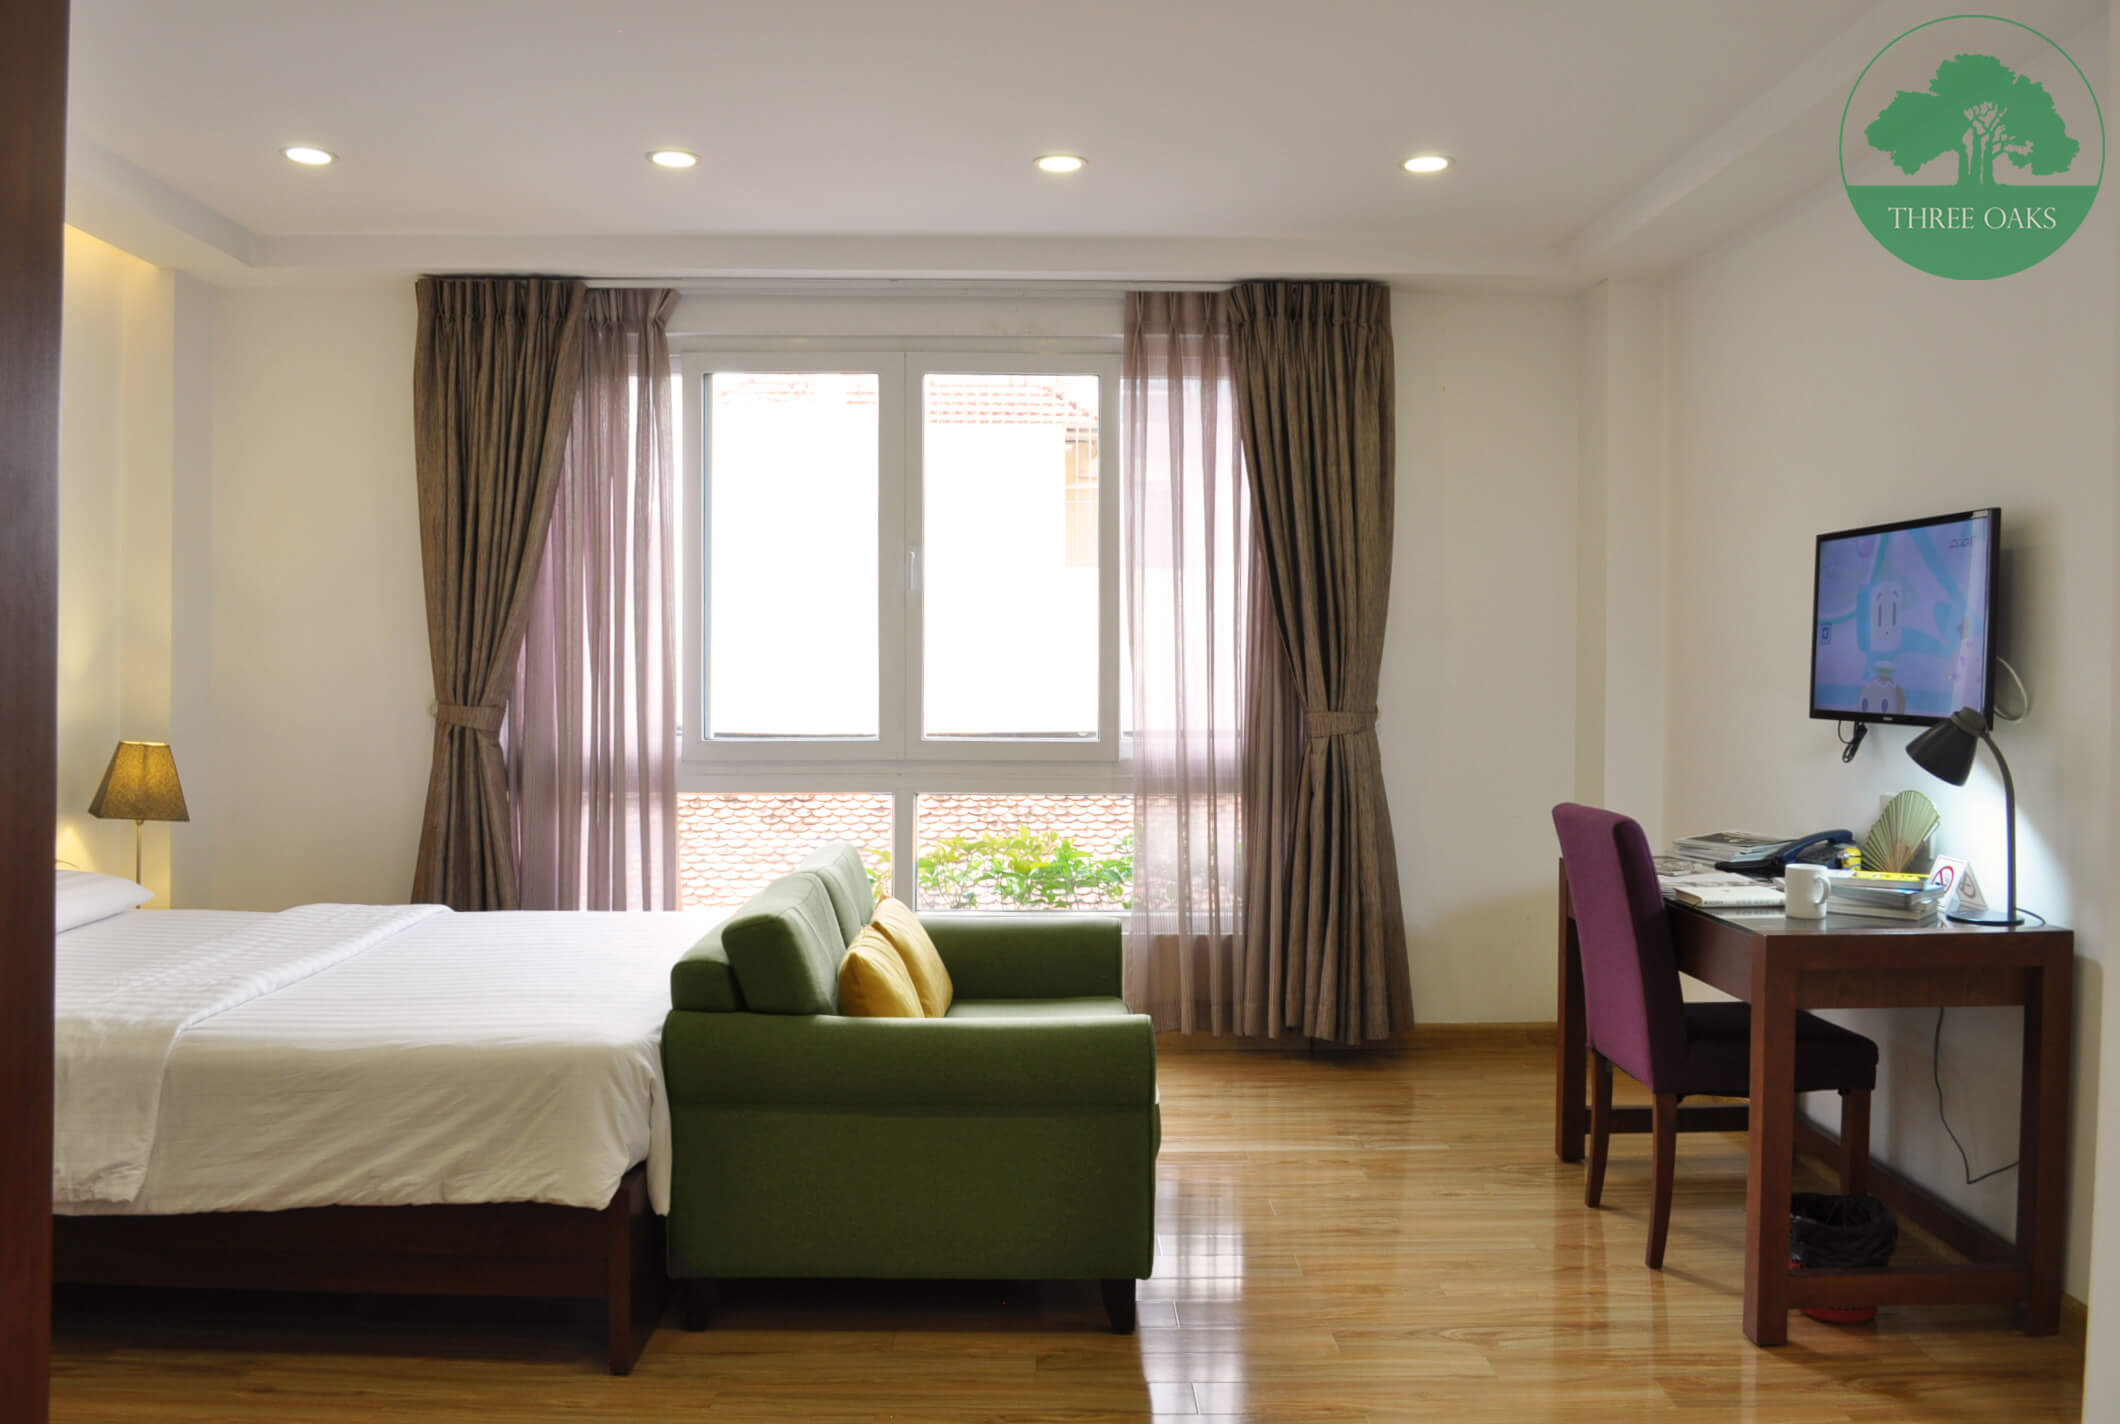 serviced-apartment-in-hcm-three-oaks-2-tybe-a-41